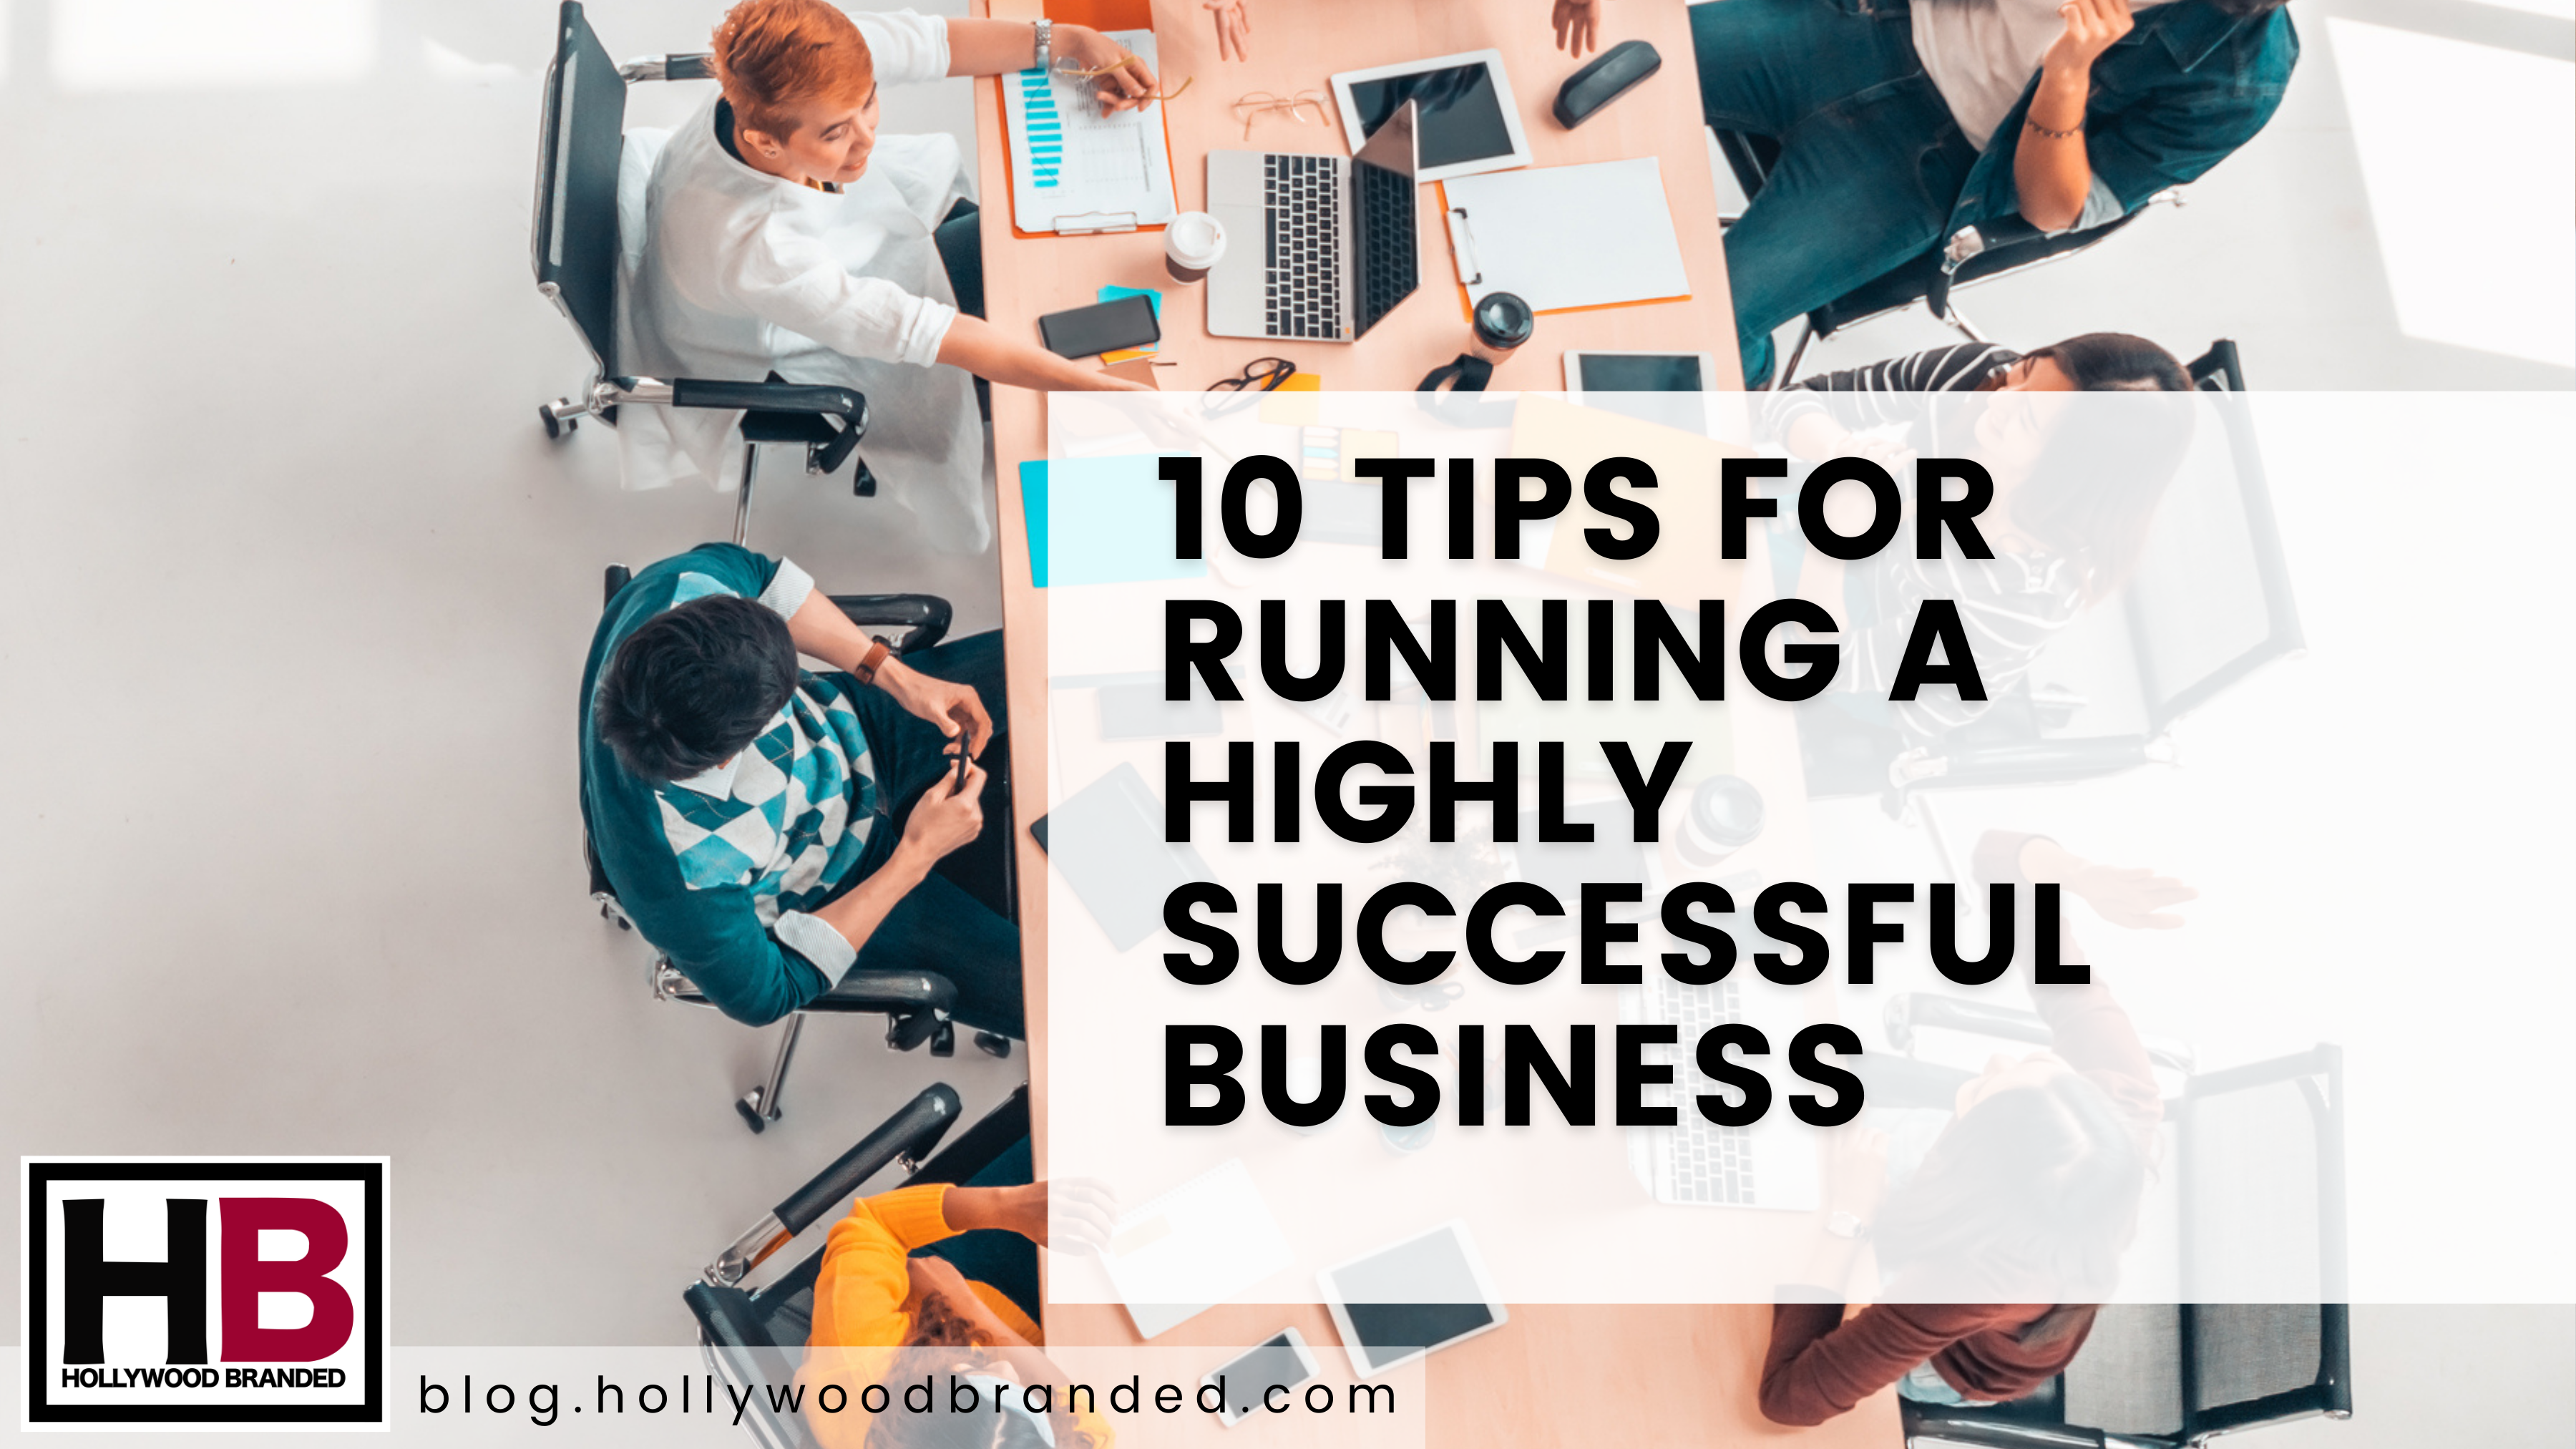 10 Tips For Running A Highly Successful Business